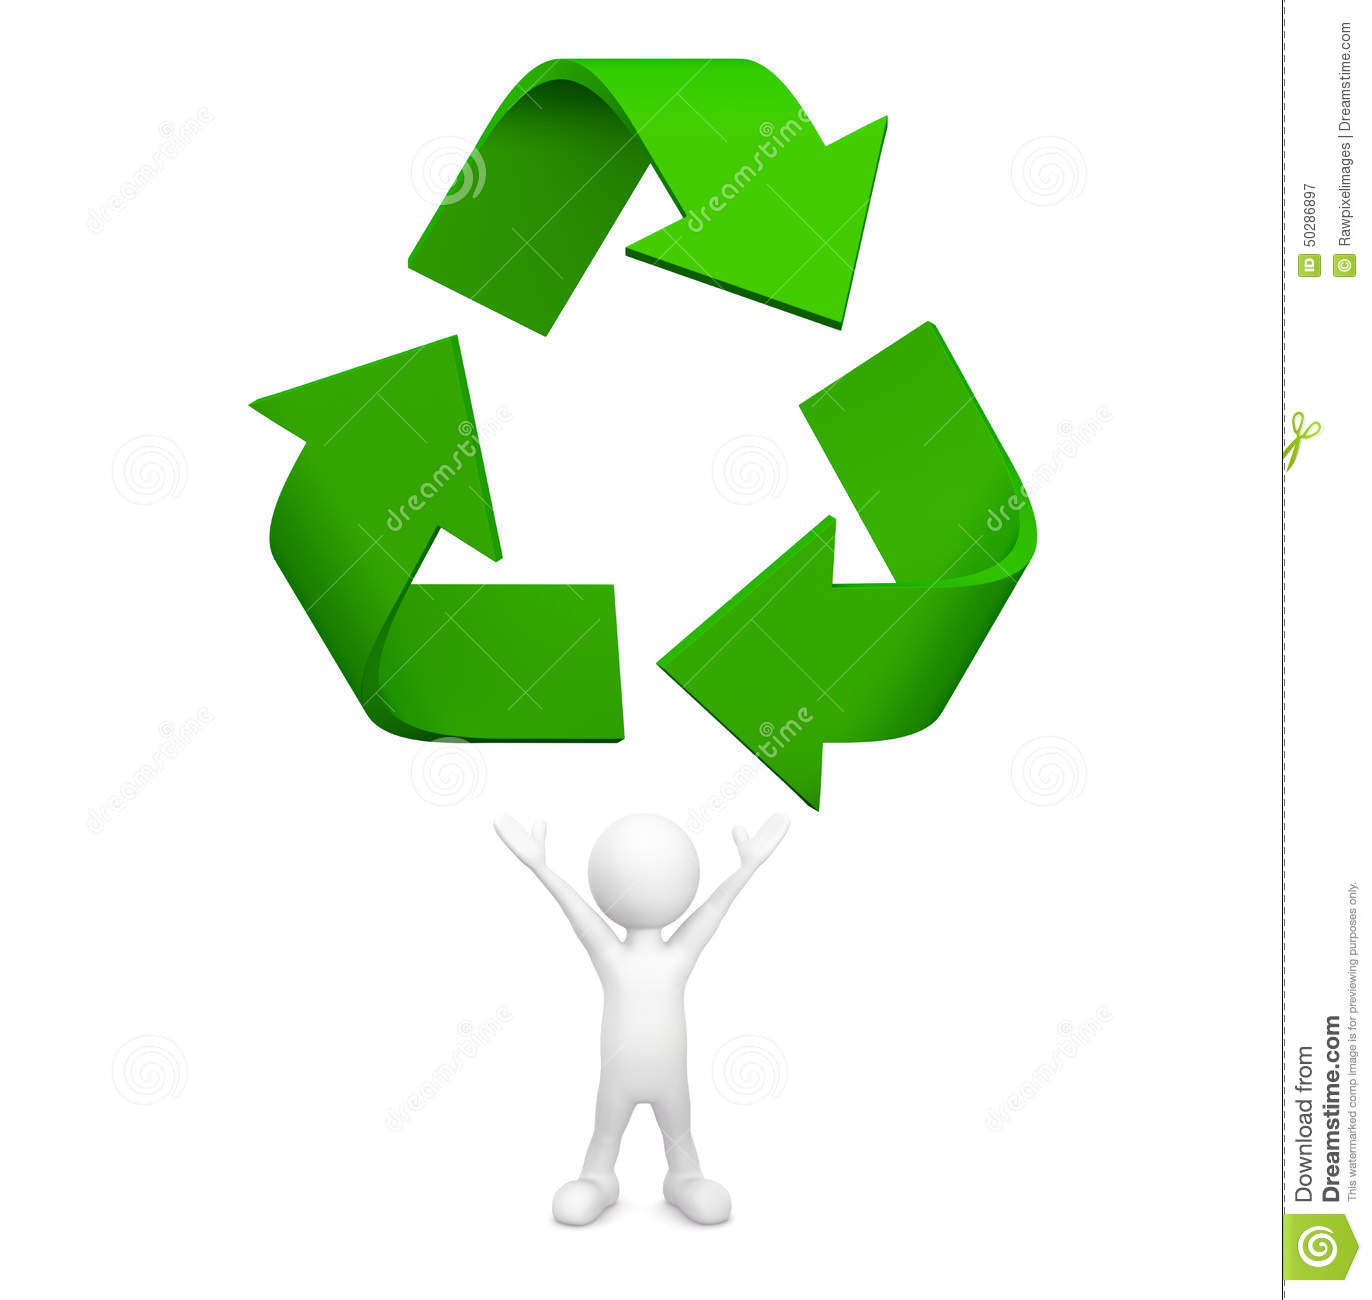 Reuse, Reduce, Recycle Vector Illustration | CartoonDealer ...